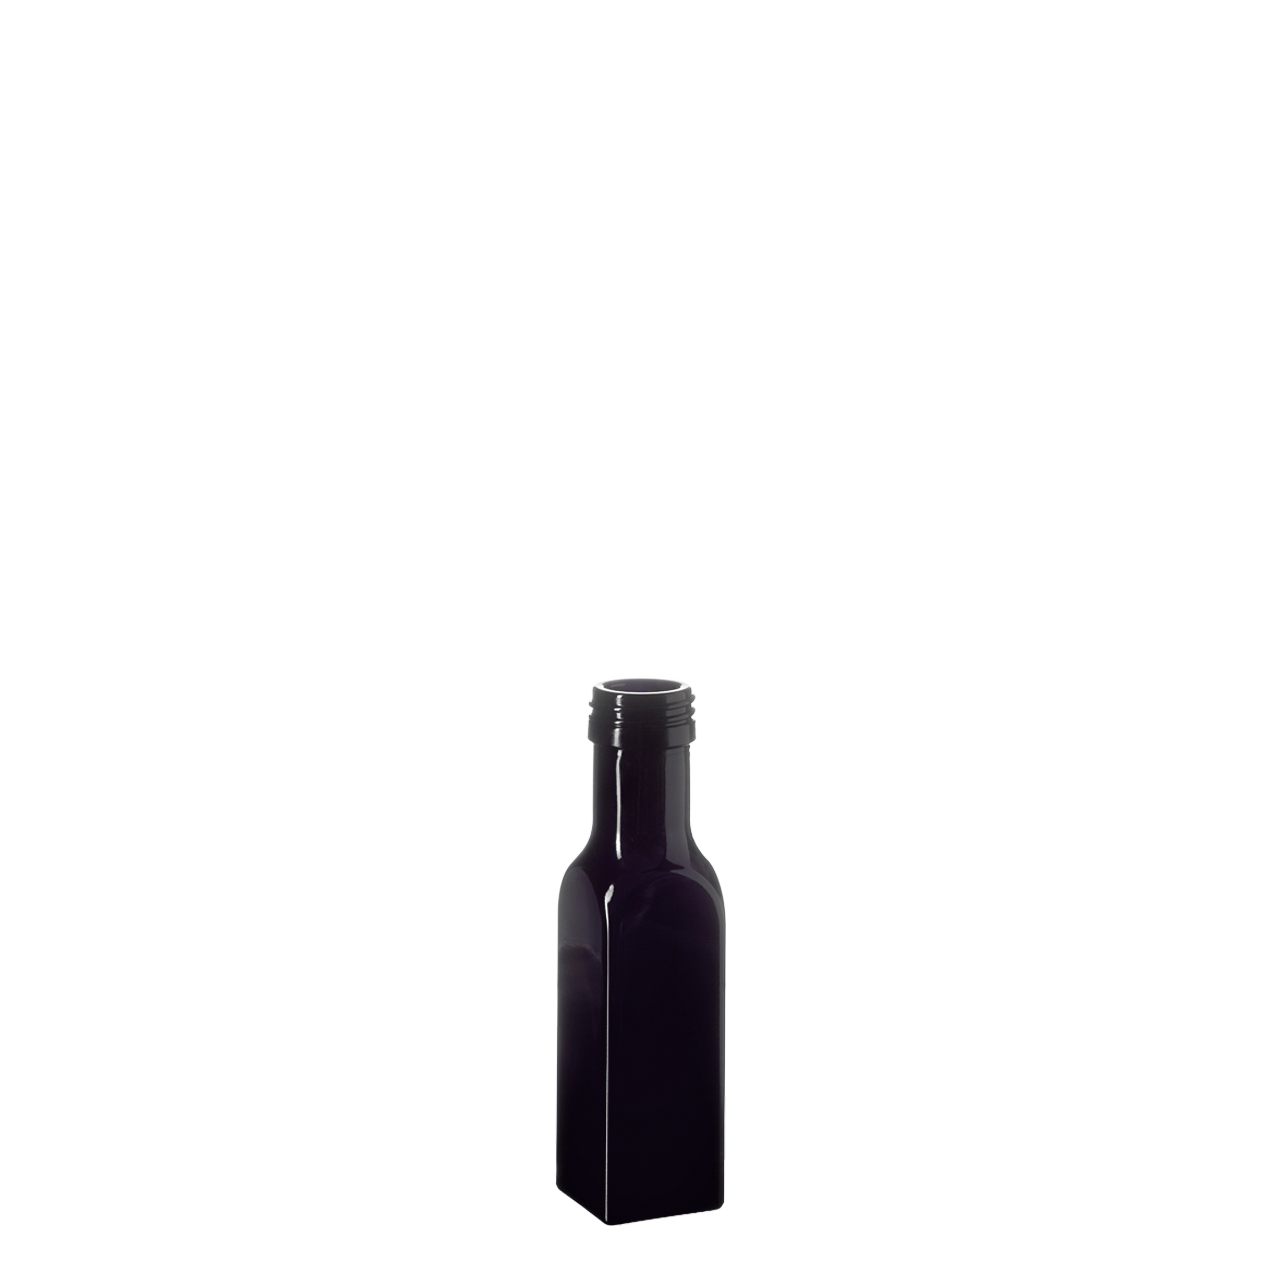 Oil bottle Castor 100 ml, Miron, 31.5 STD thread (square)